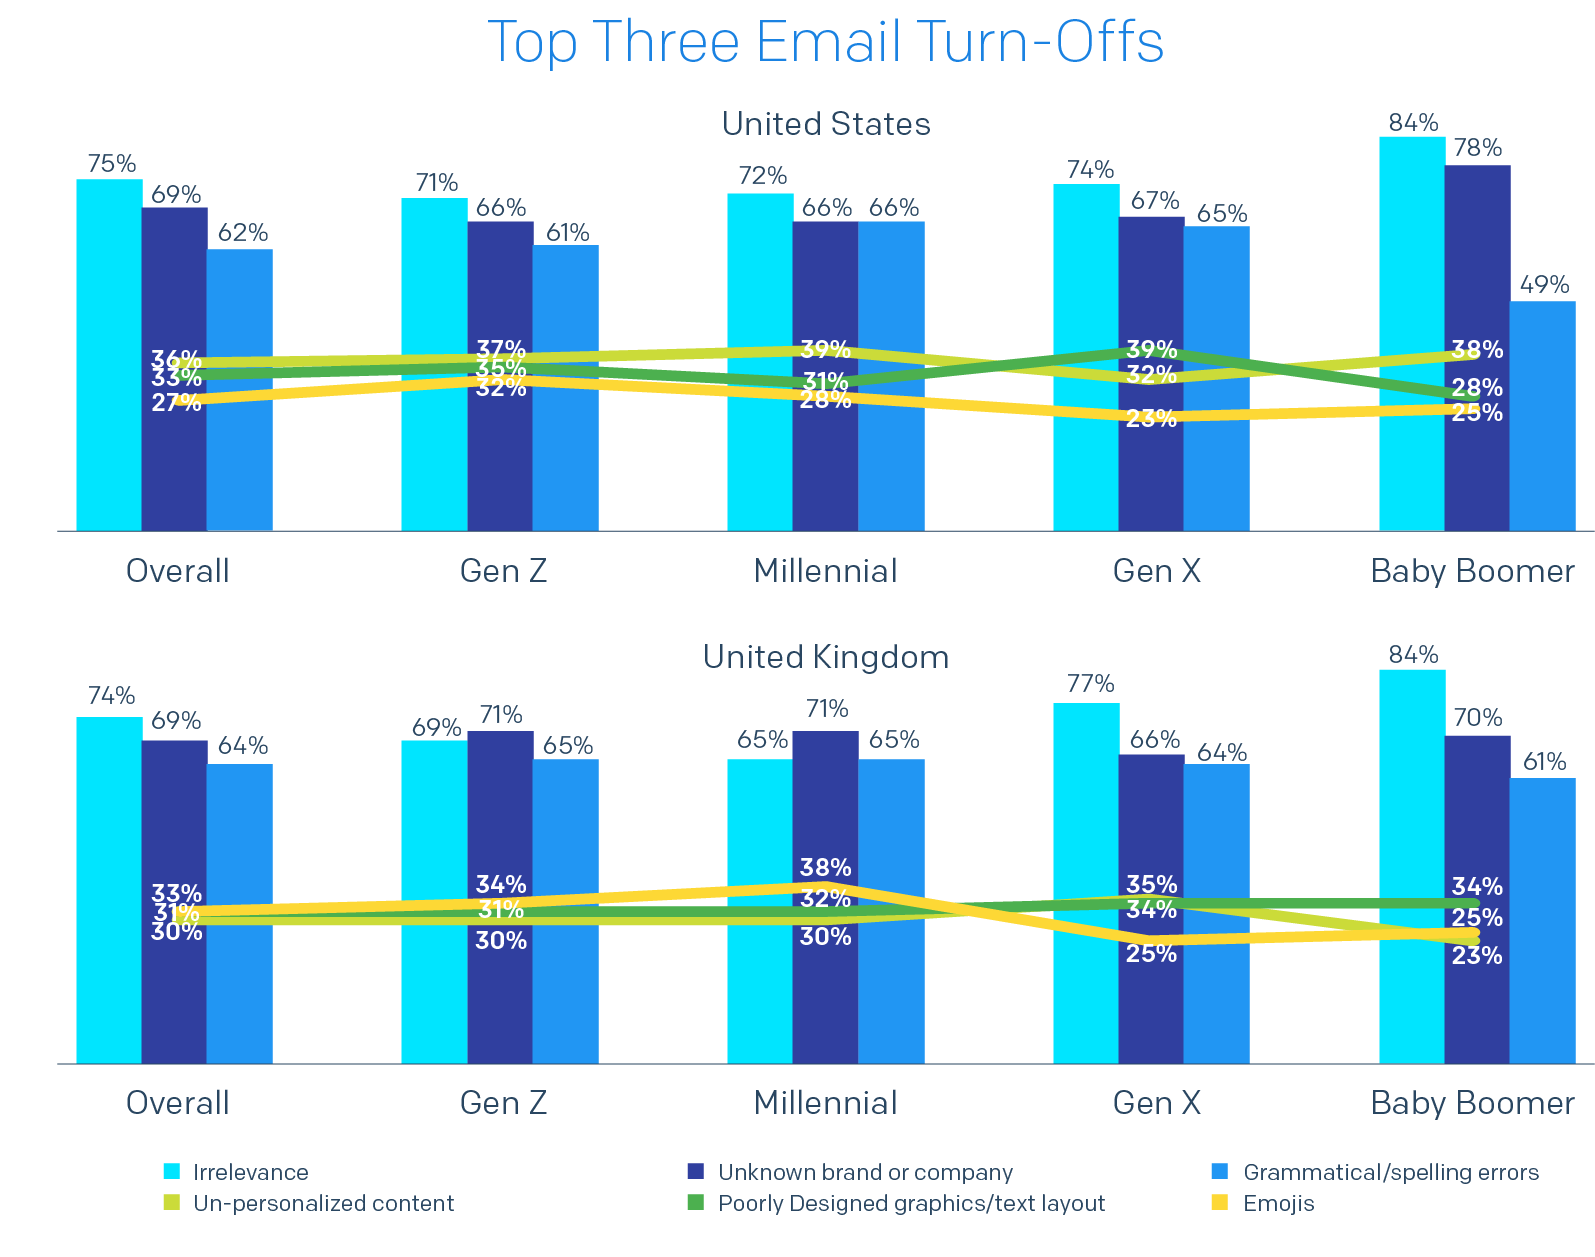 Bar chart of Top Three Email Turn-Offs by country